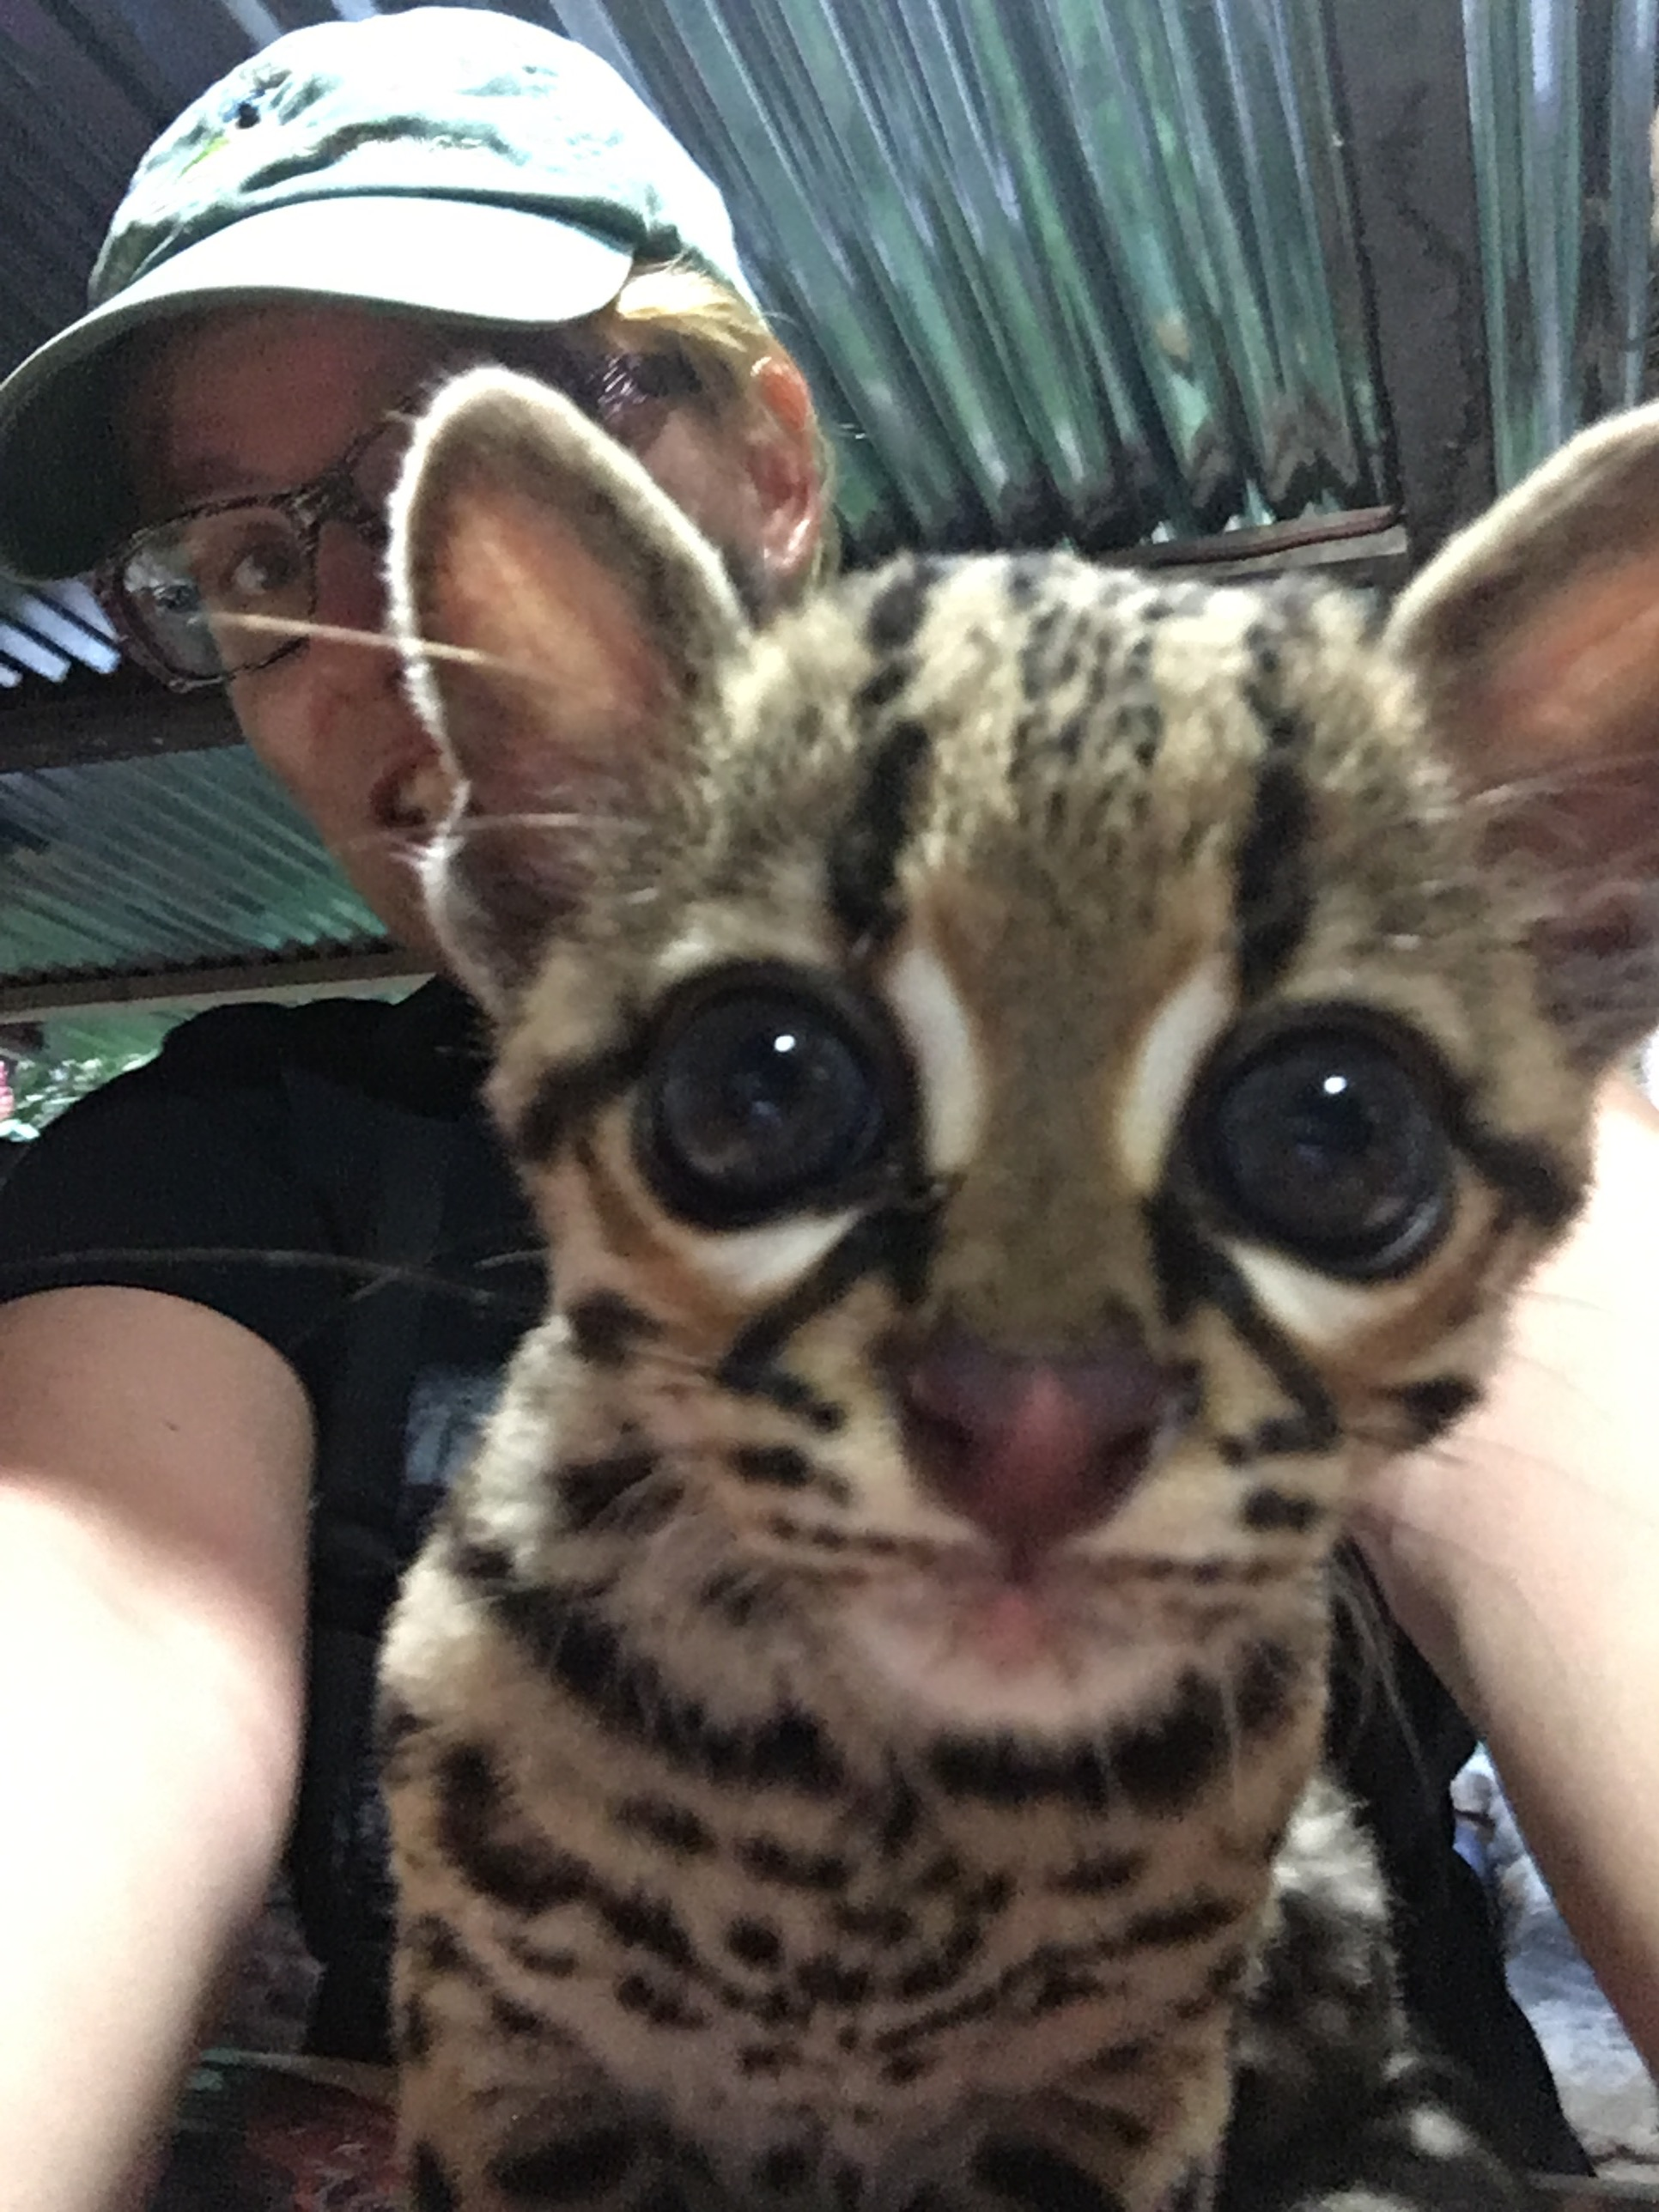 Right after this was taken, the young ocelot noticed its own face in the front screen of my phone. It pressed its ears back, gave a tiny growl and wanted nothing to do with me after that. Smart cat.